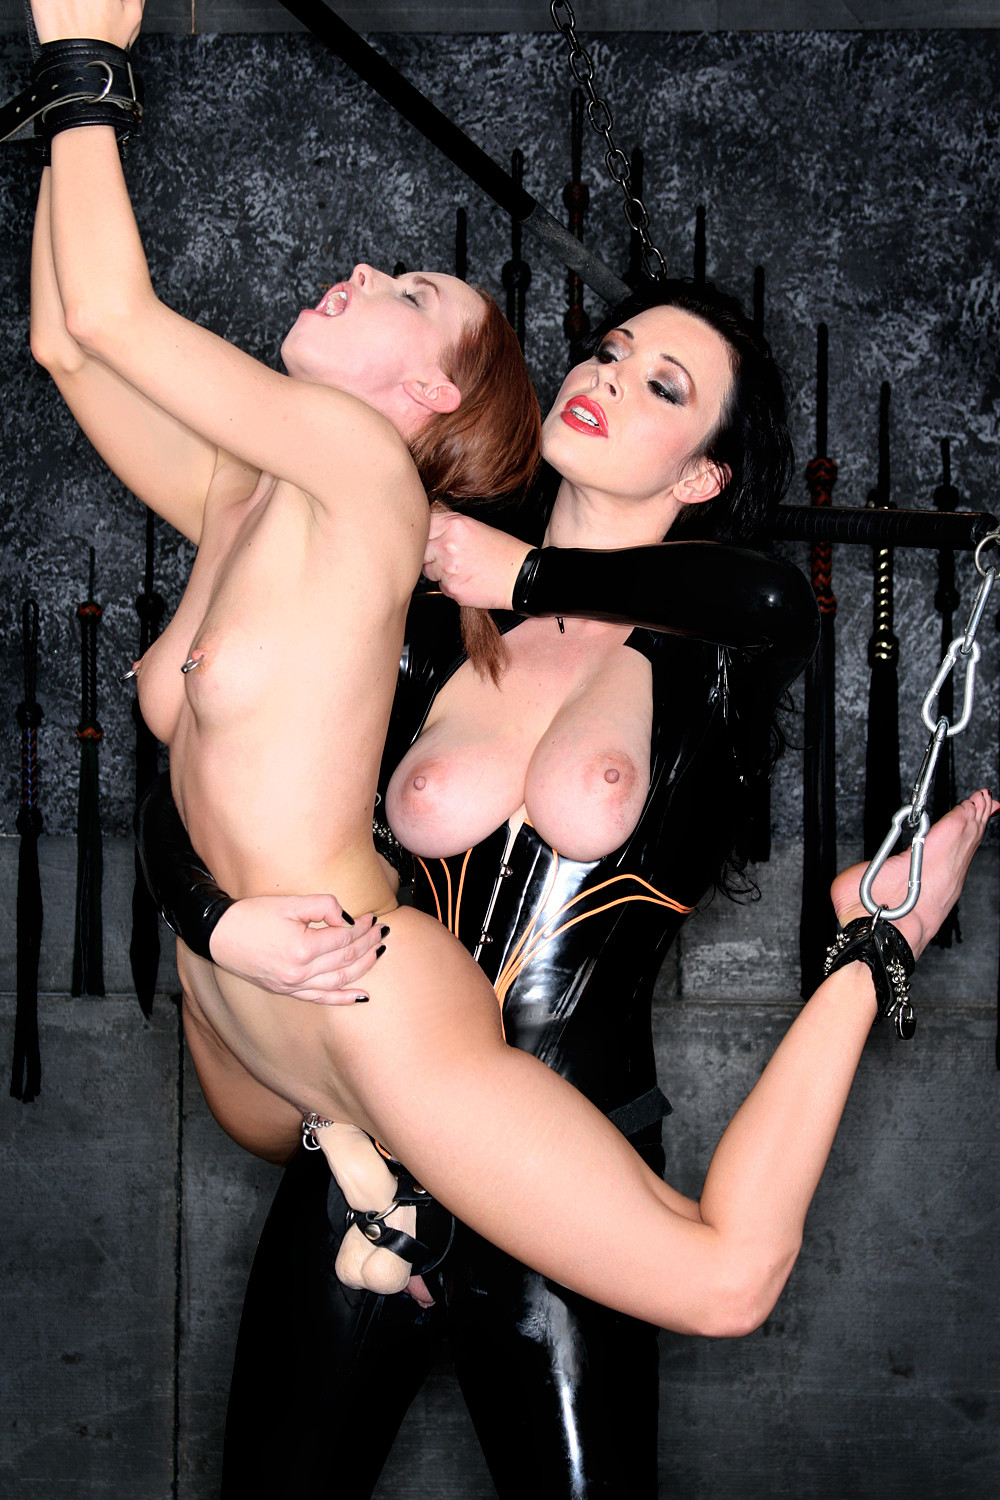 image Tied up bdsm bondage babe pussy pleased